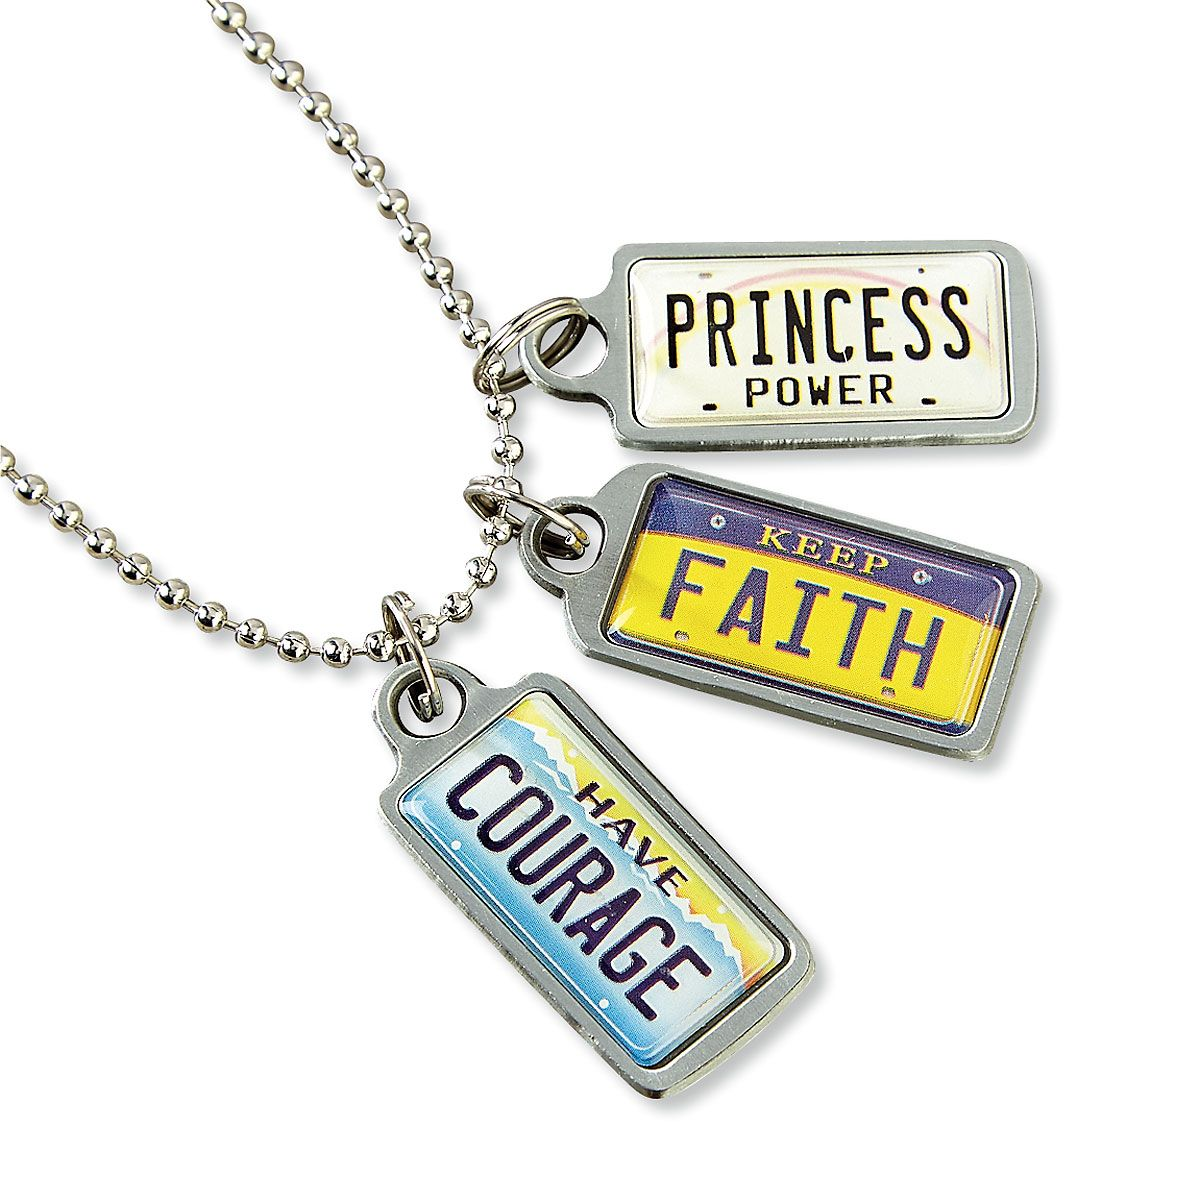 Ball Chain Necklace & License Plate Charms